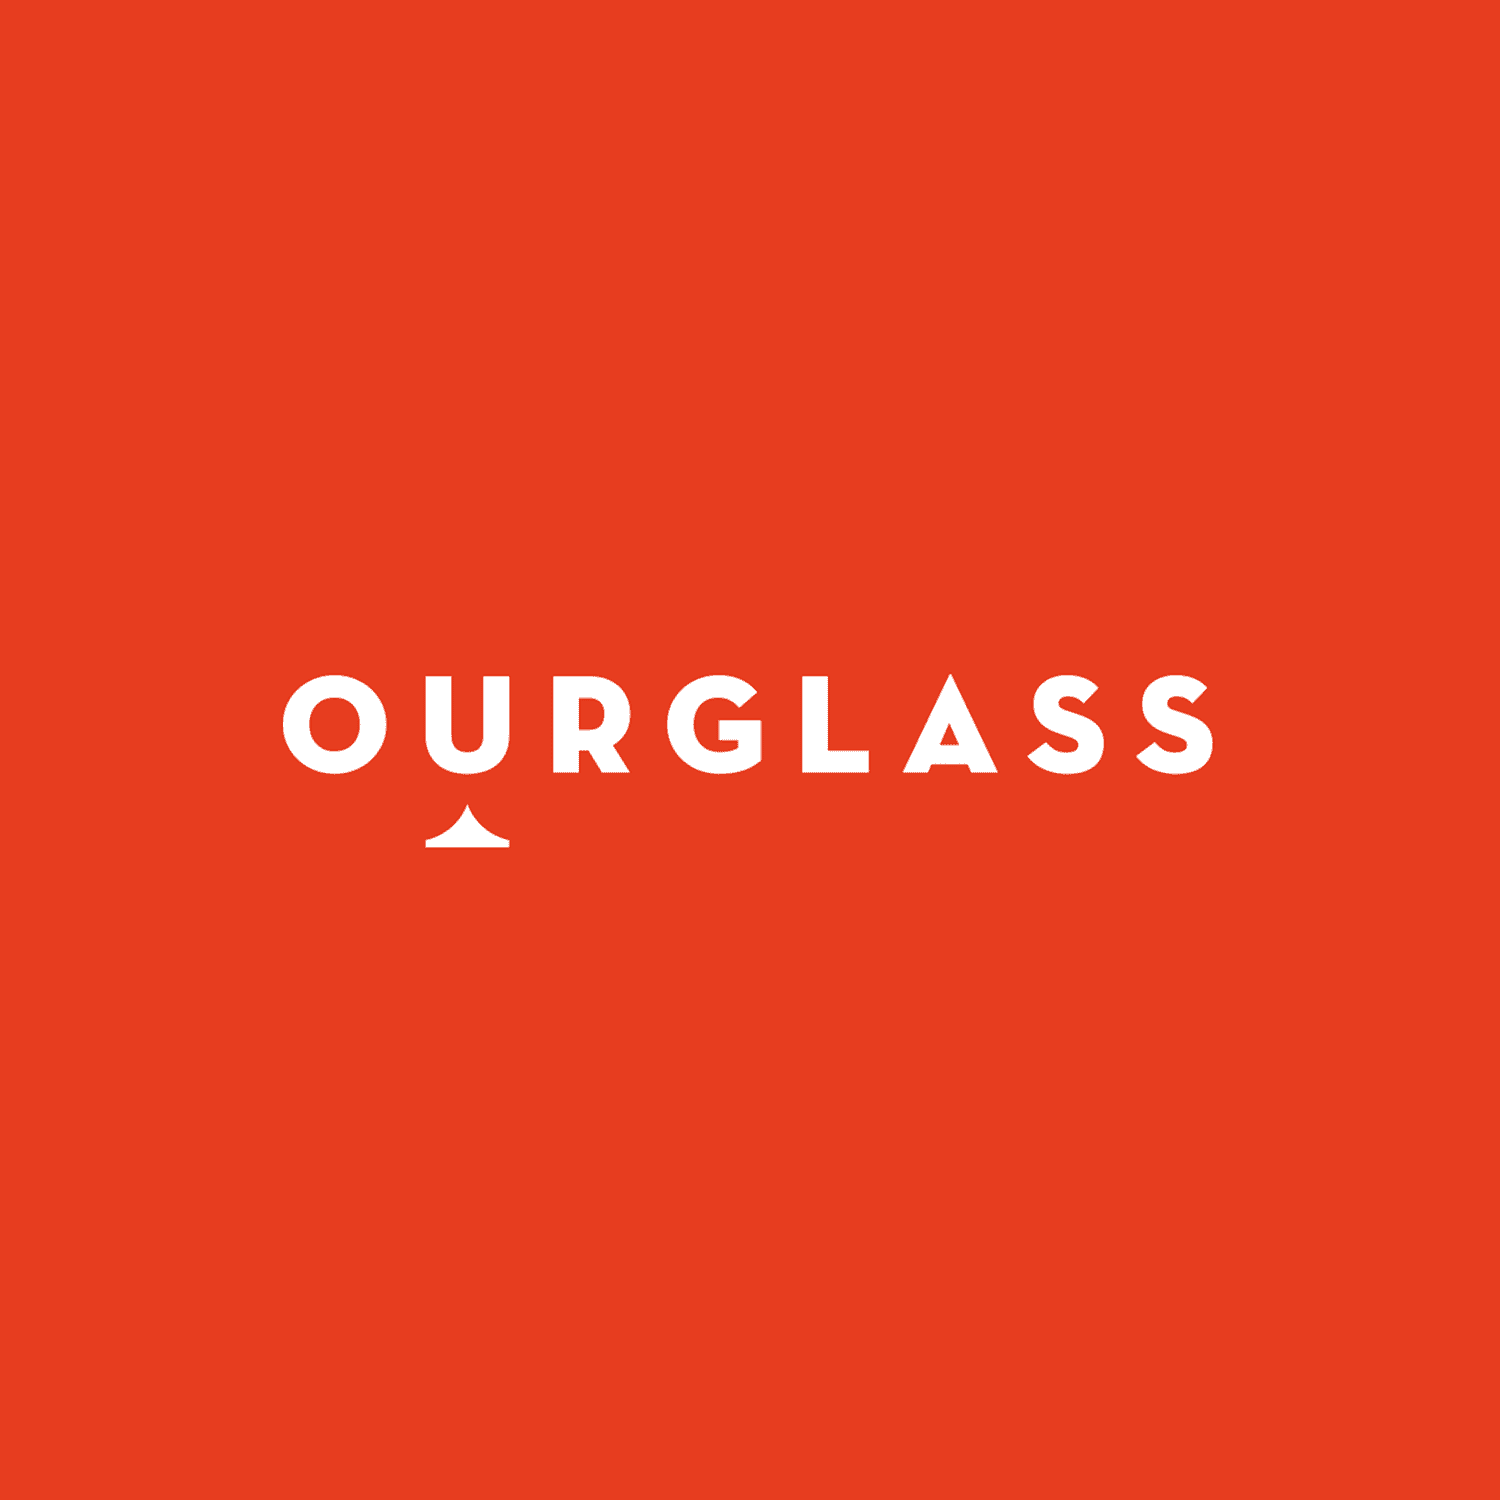 Ourglass branding and website